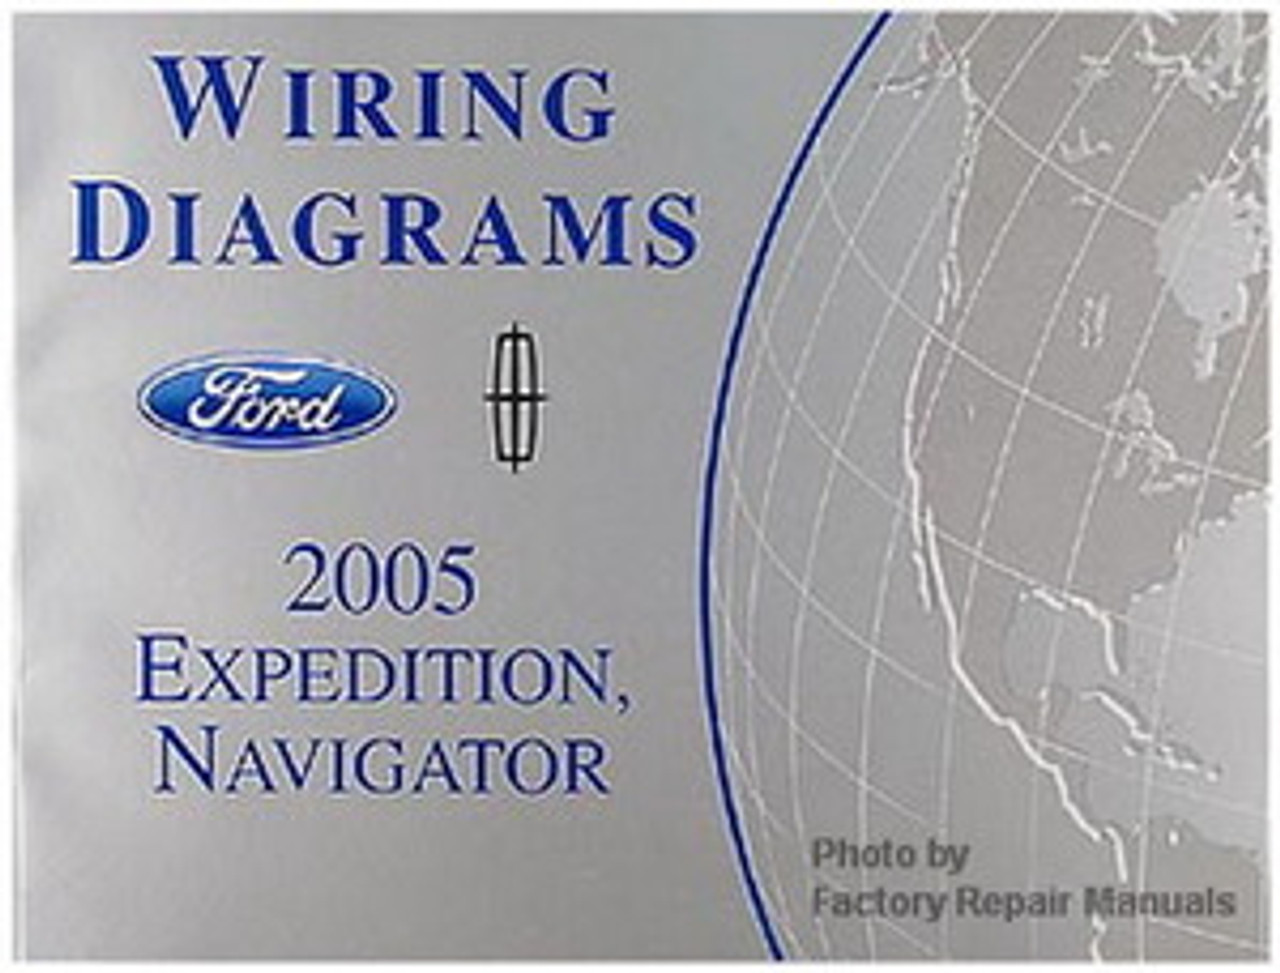 Wiring Diagram Ford Expedition from cdn11.bigcommerce.com